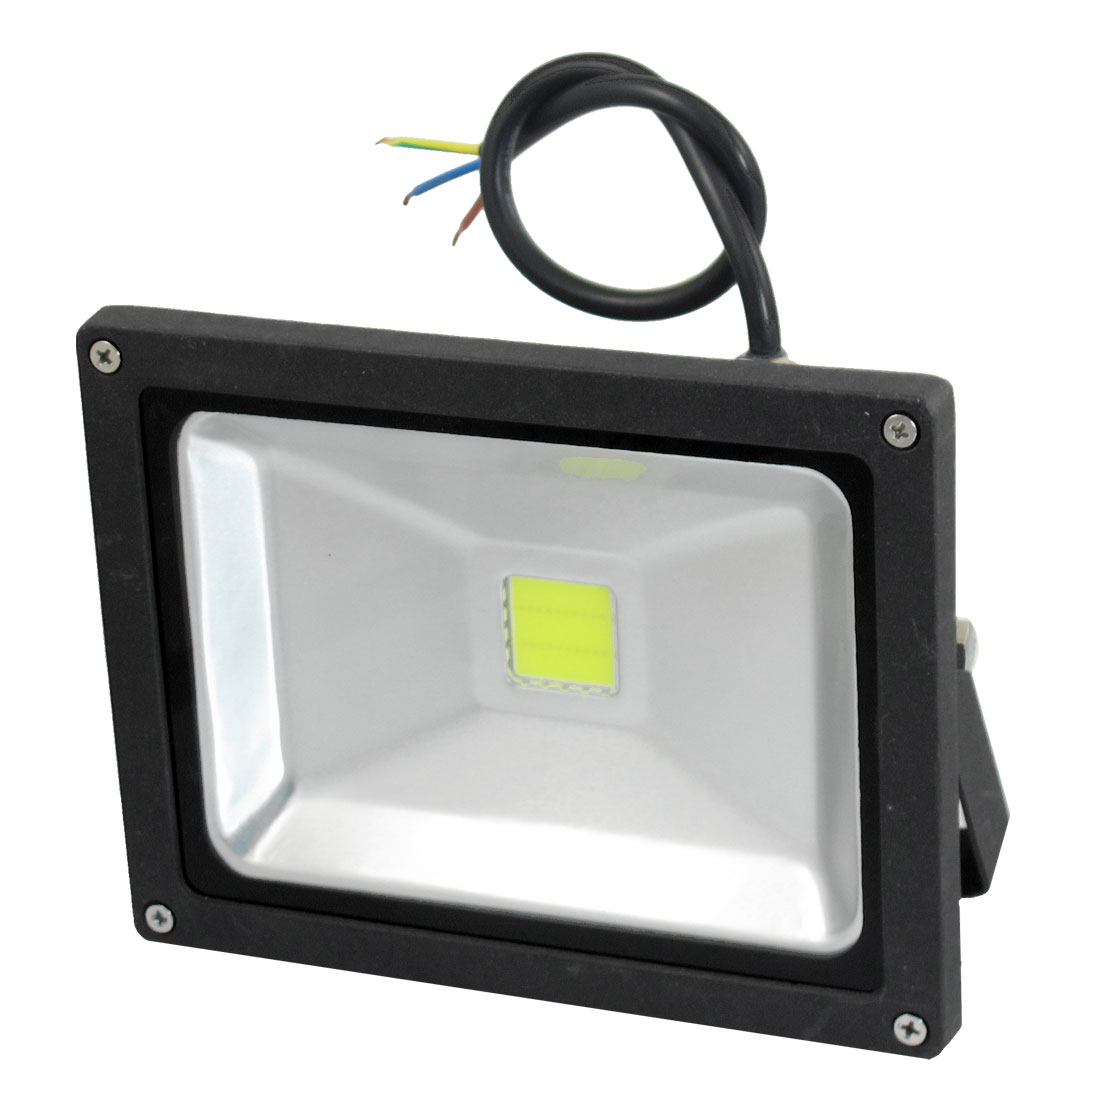 AC220V 50Hz 20 Watt LED Waterproof Outdoor Security Flood Light